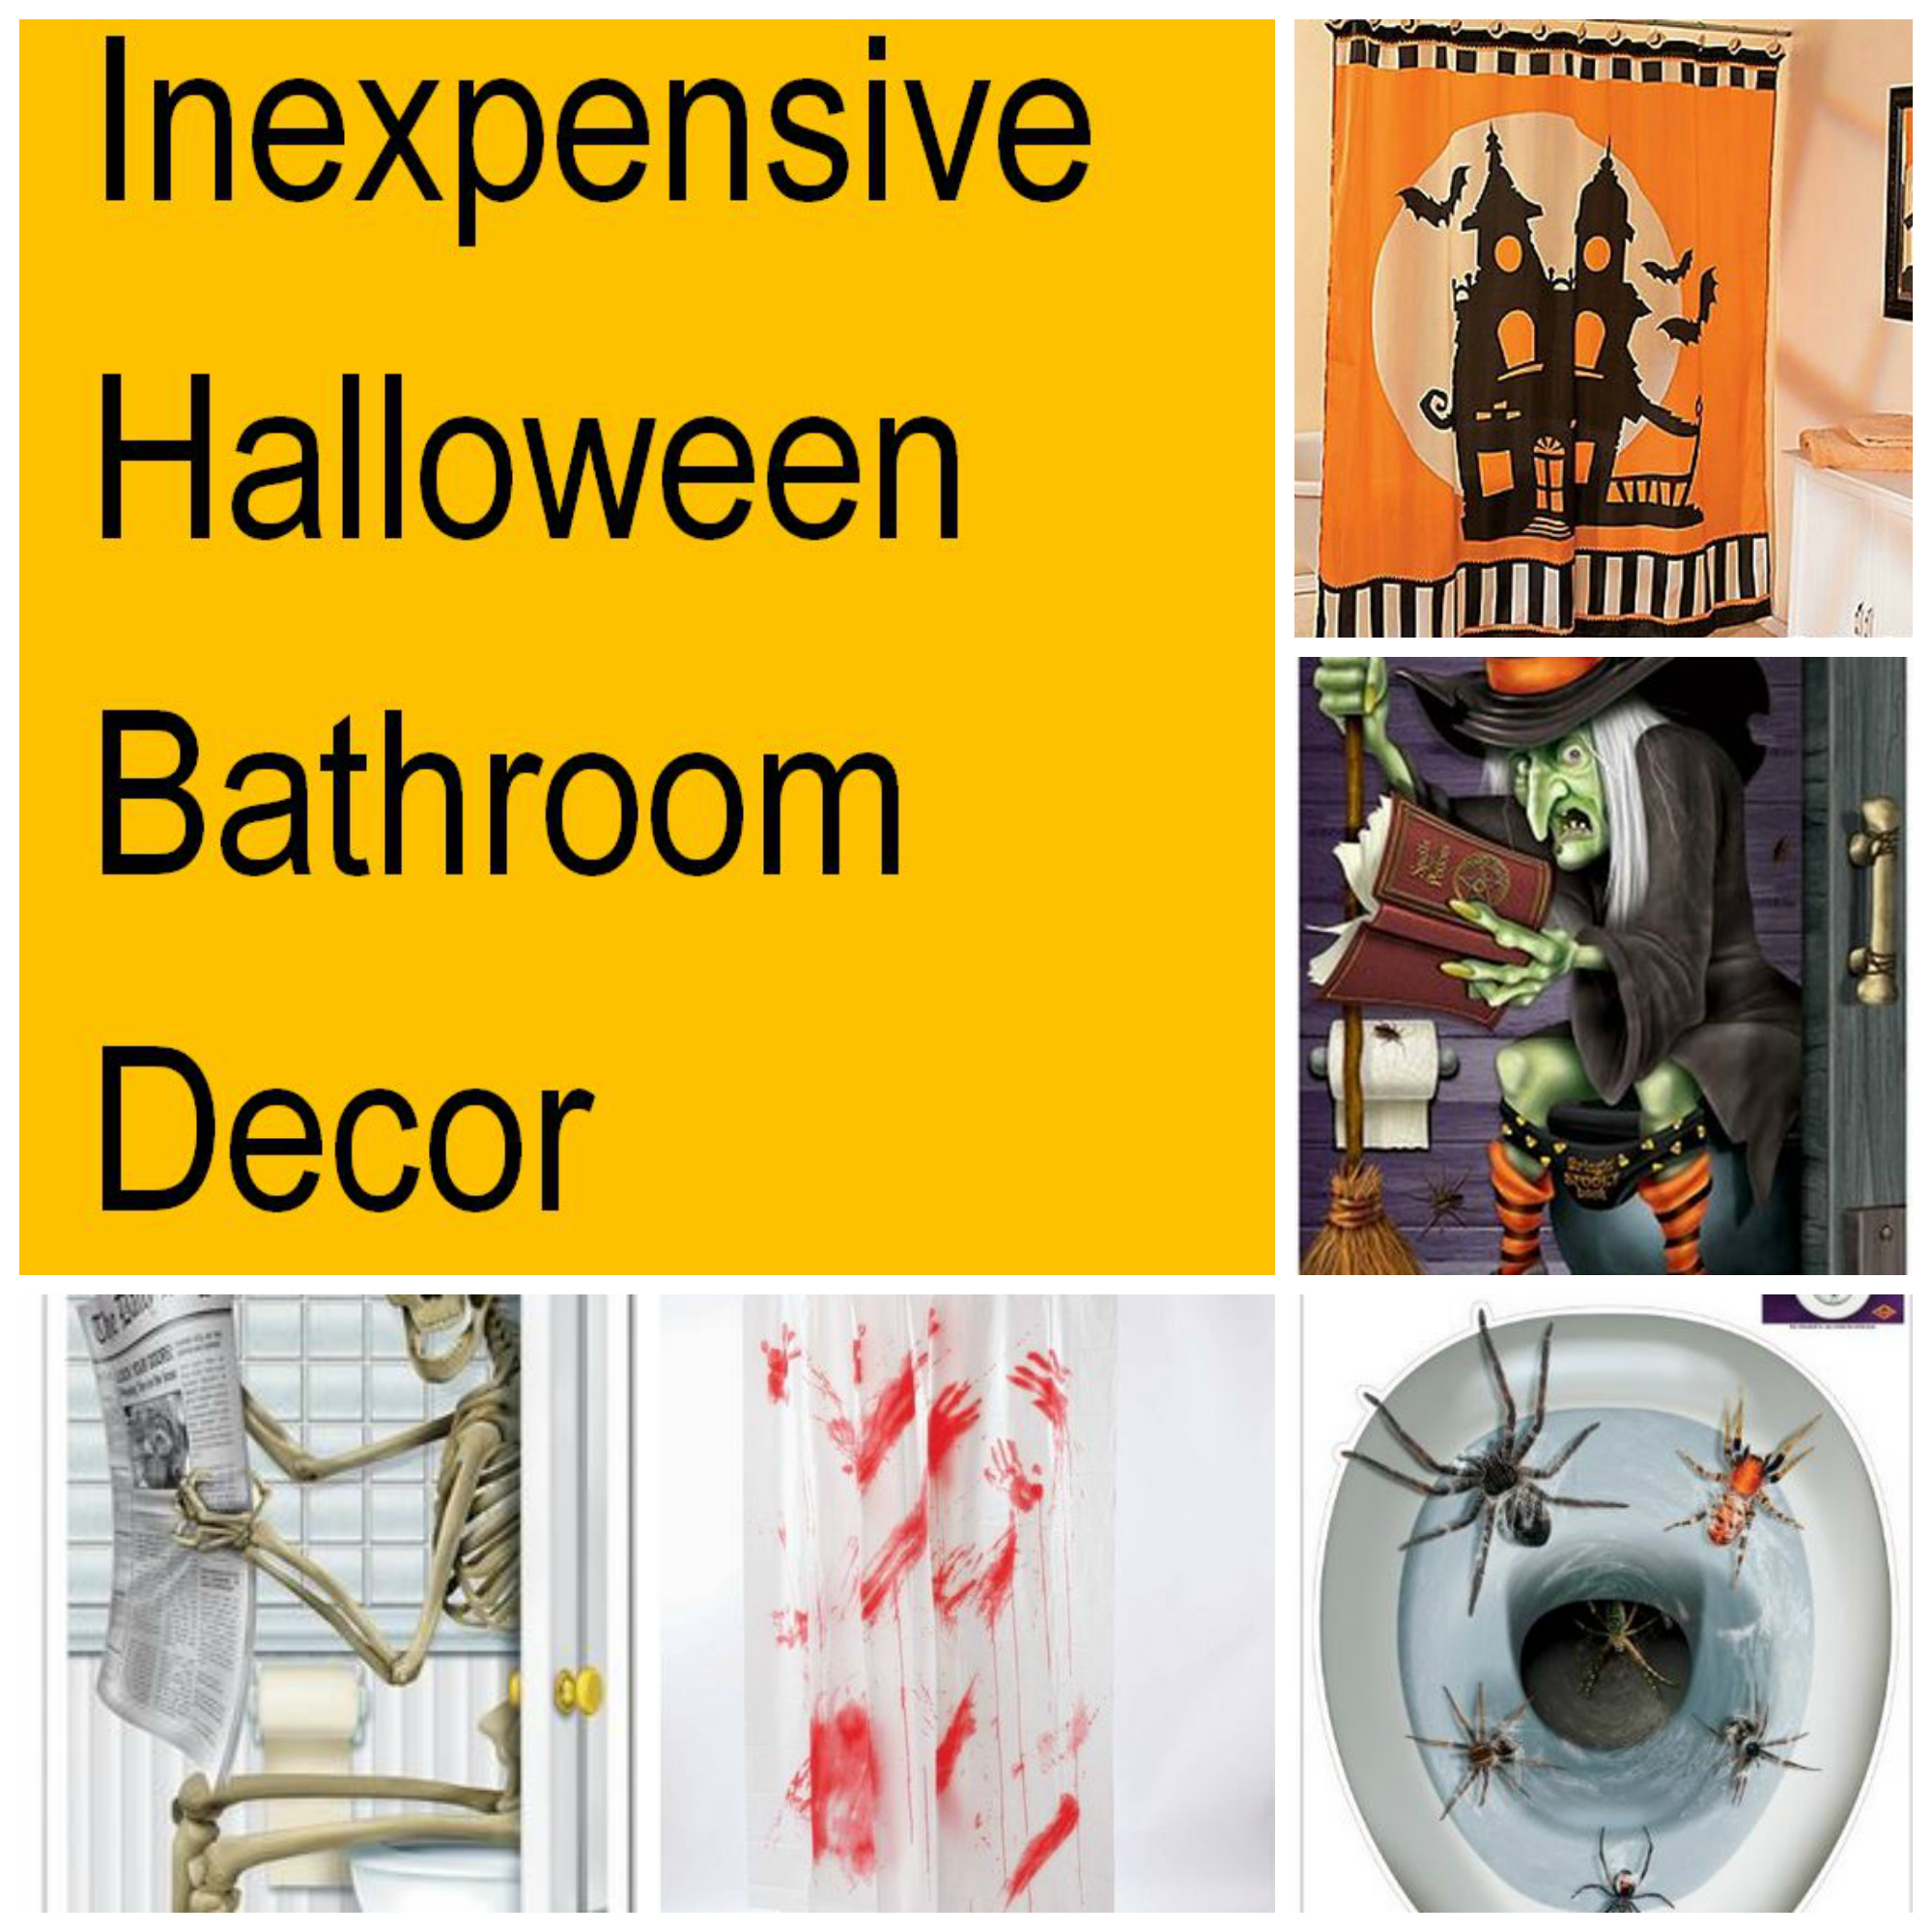 halloween bathroom decor - Halloween Bathroom Decorations